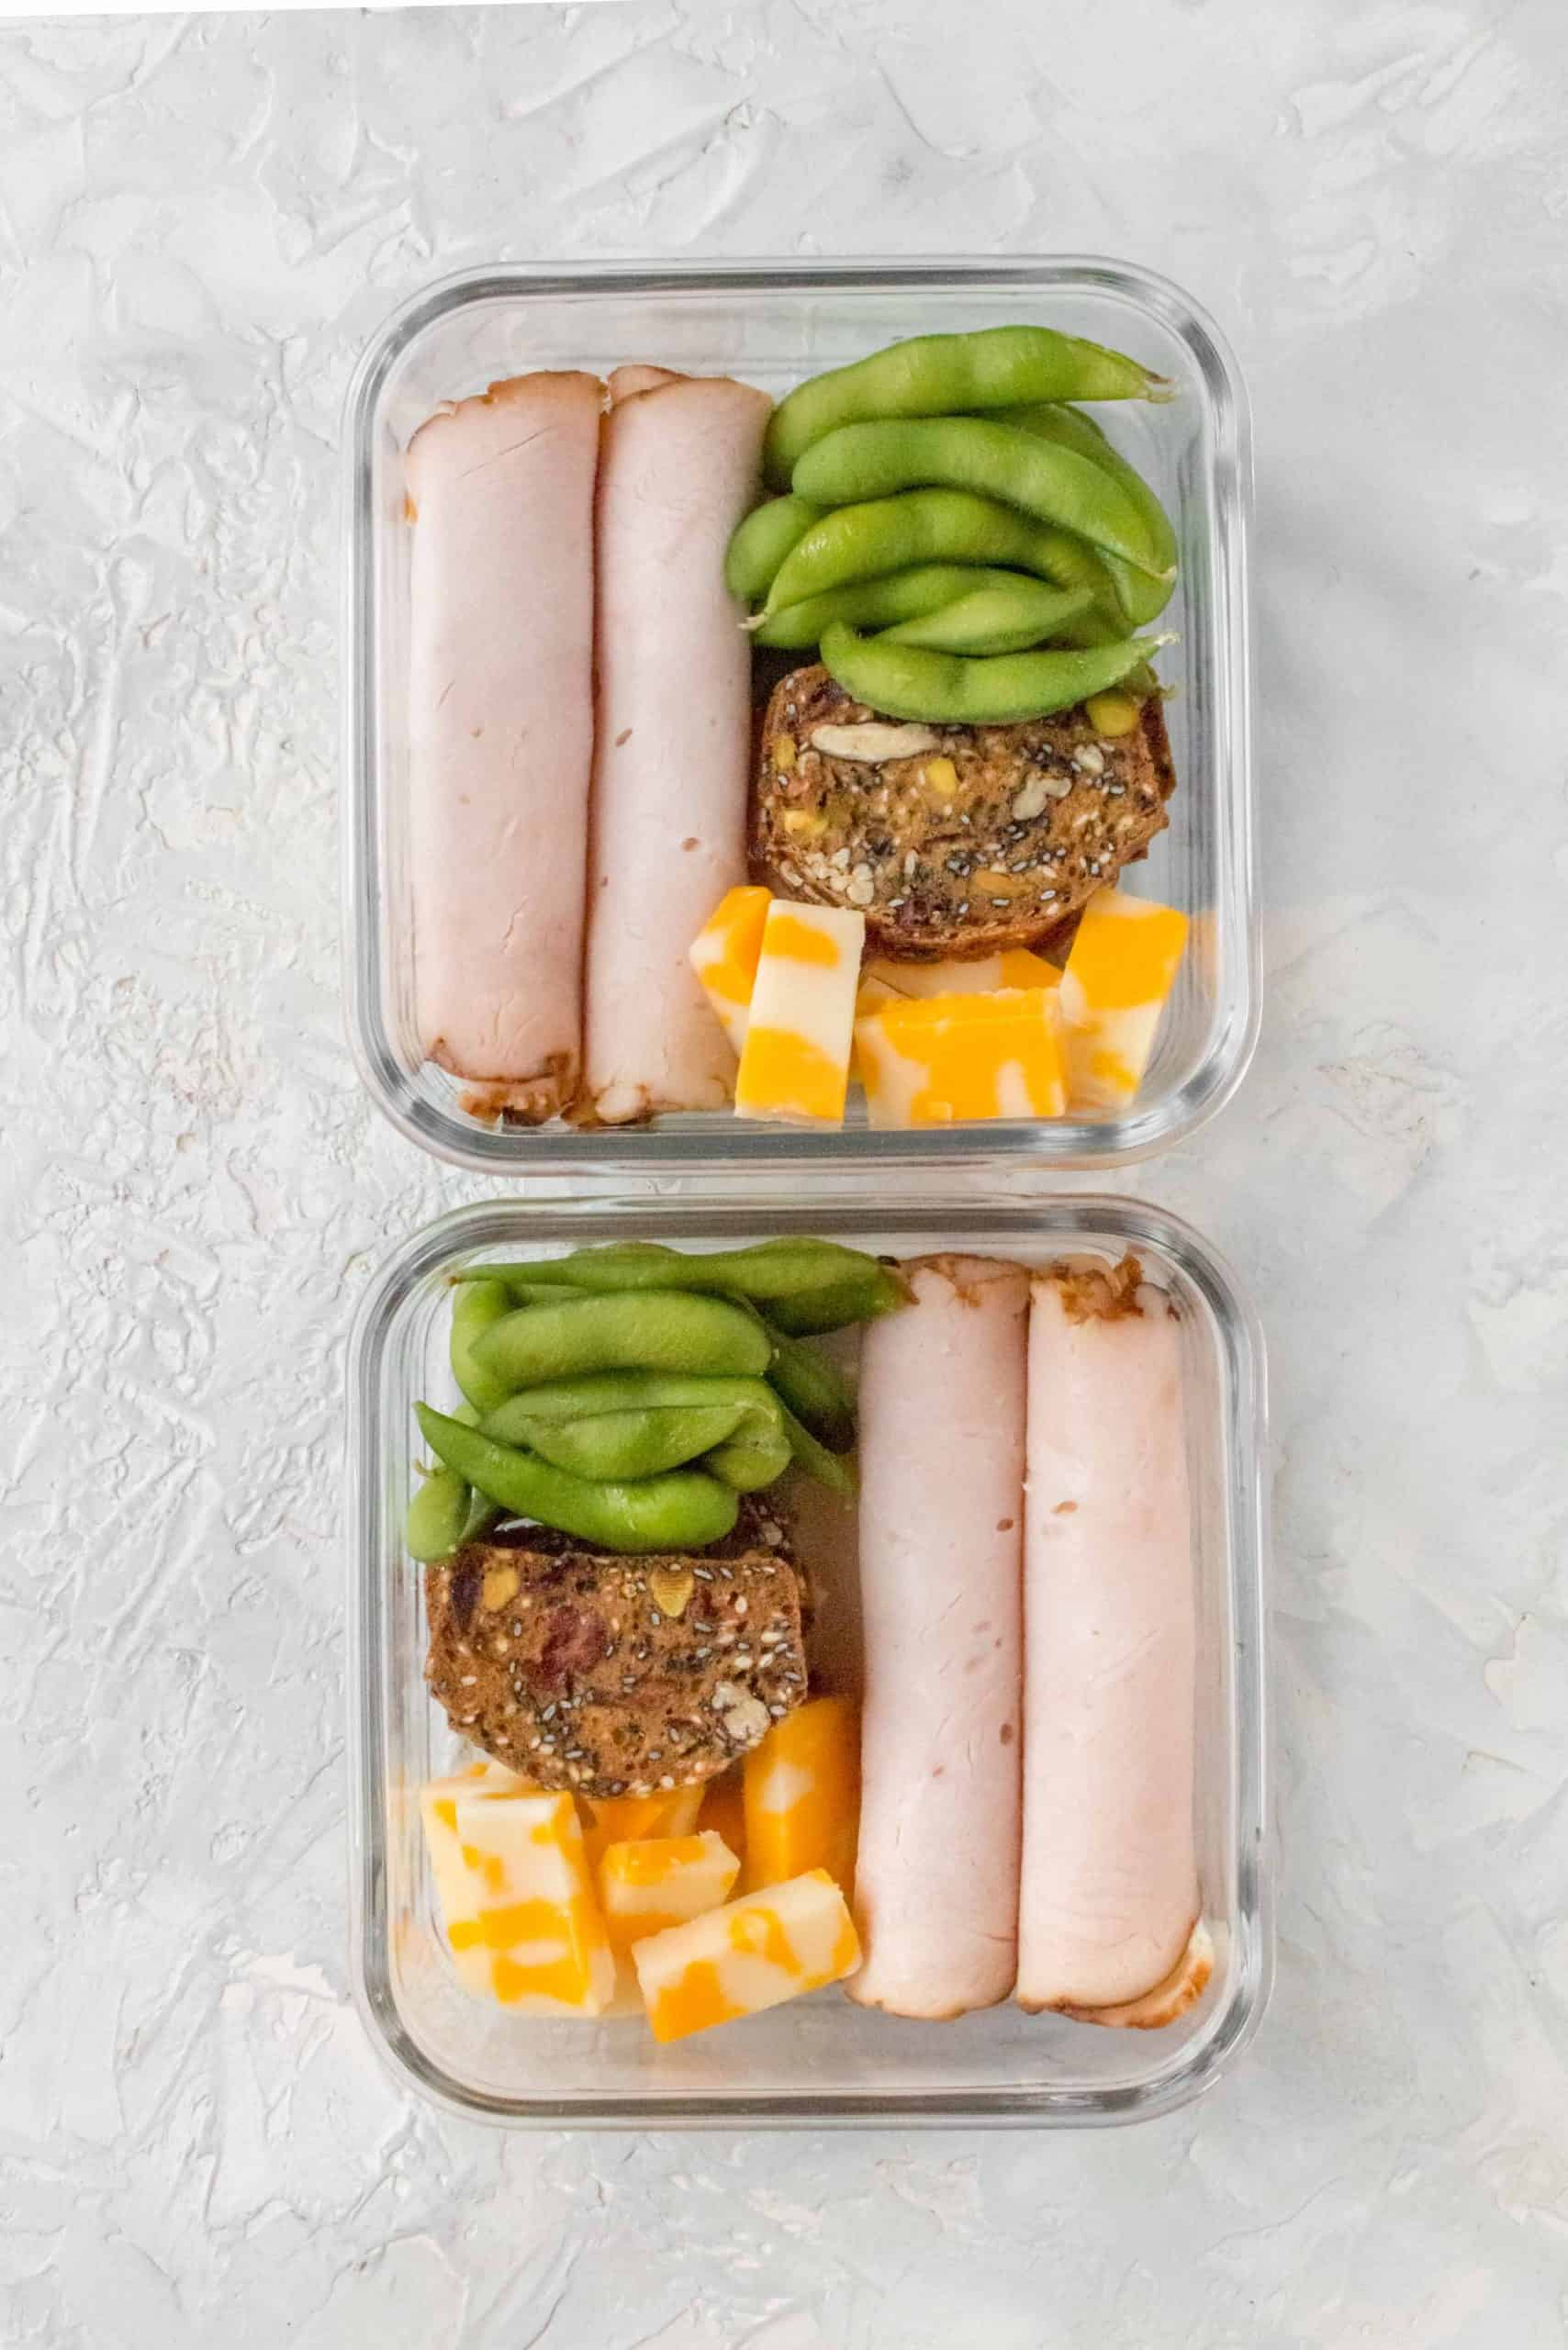 Looking for an easy snack meal prep, this Turkey Snack Box is for you!